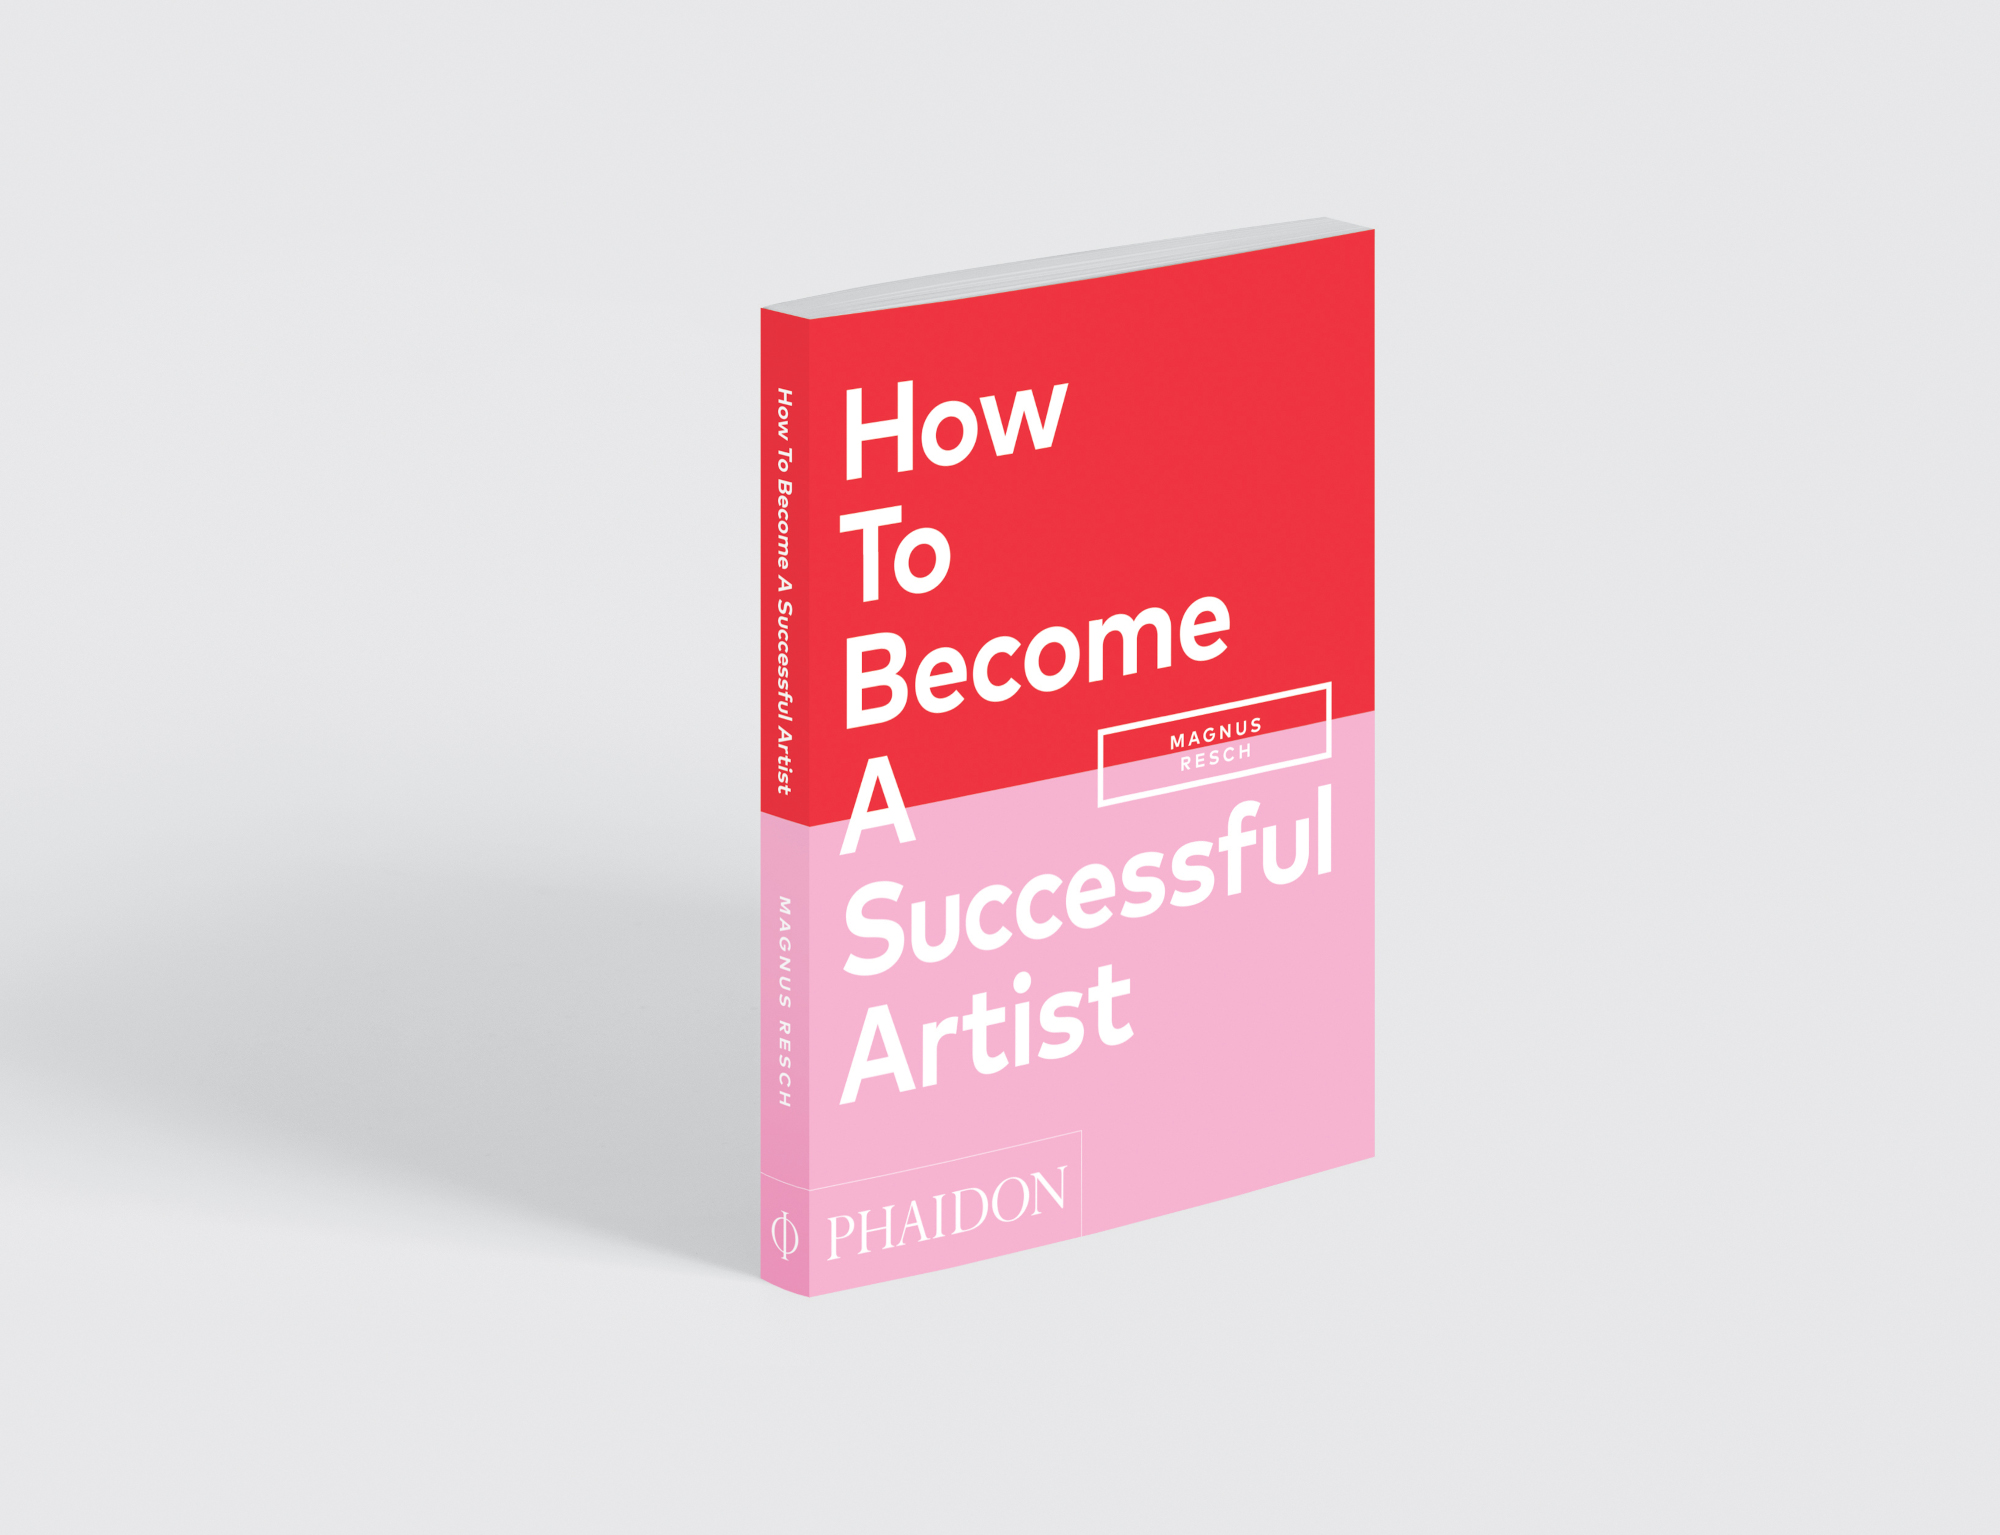 How To Become A Succesful Artist